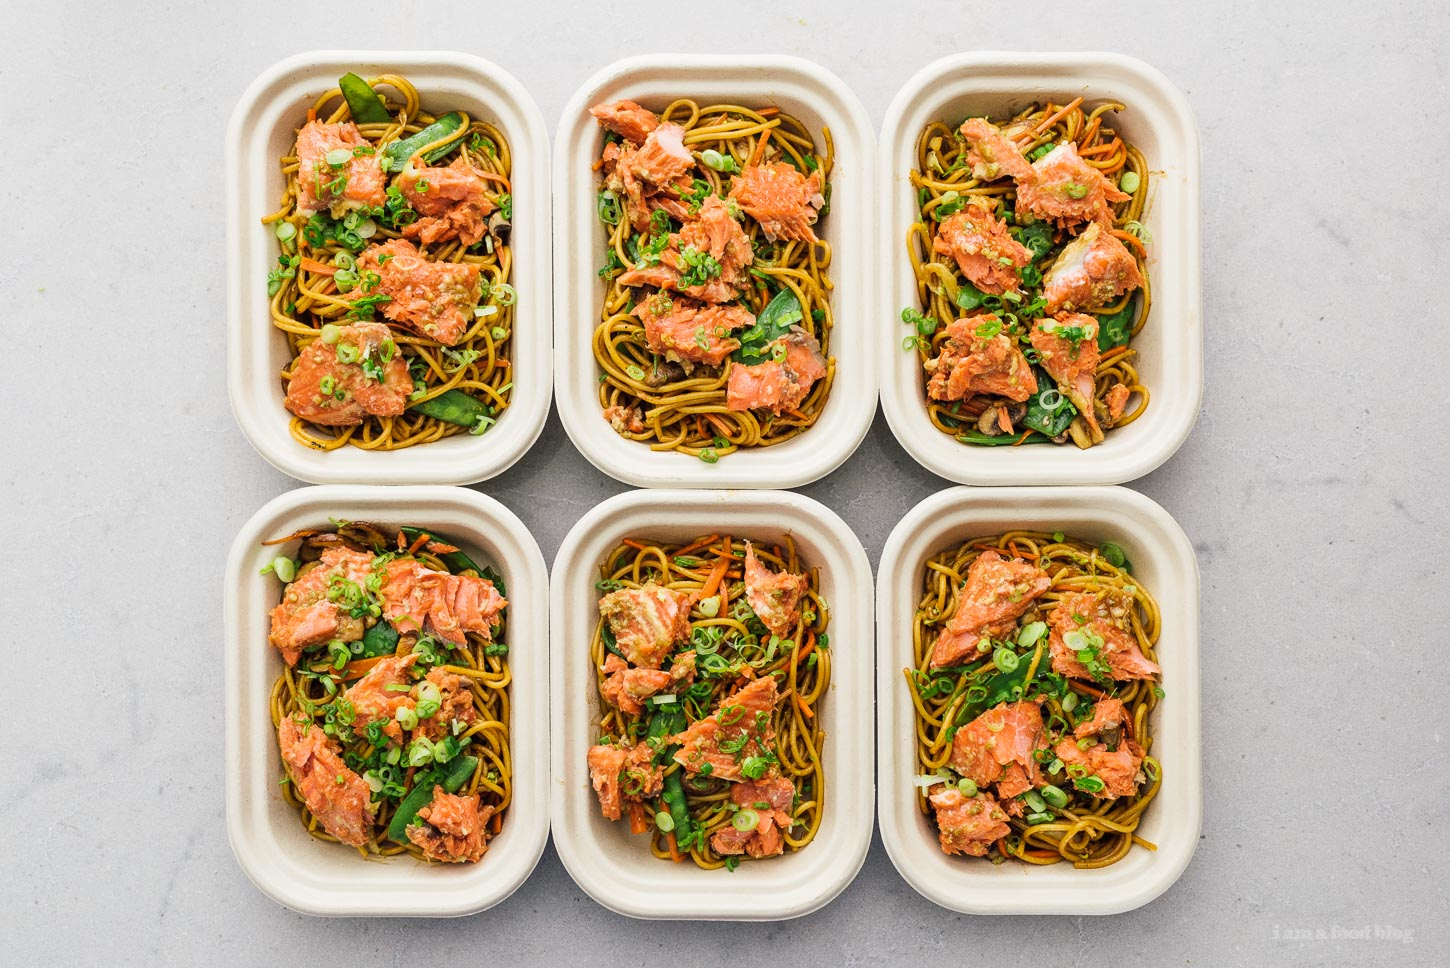 Honey Garlic Salmon with Spaghetti Meal Prep Recipe | www.iamafoodblog.com